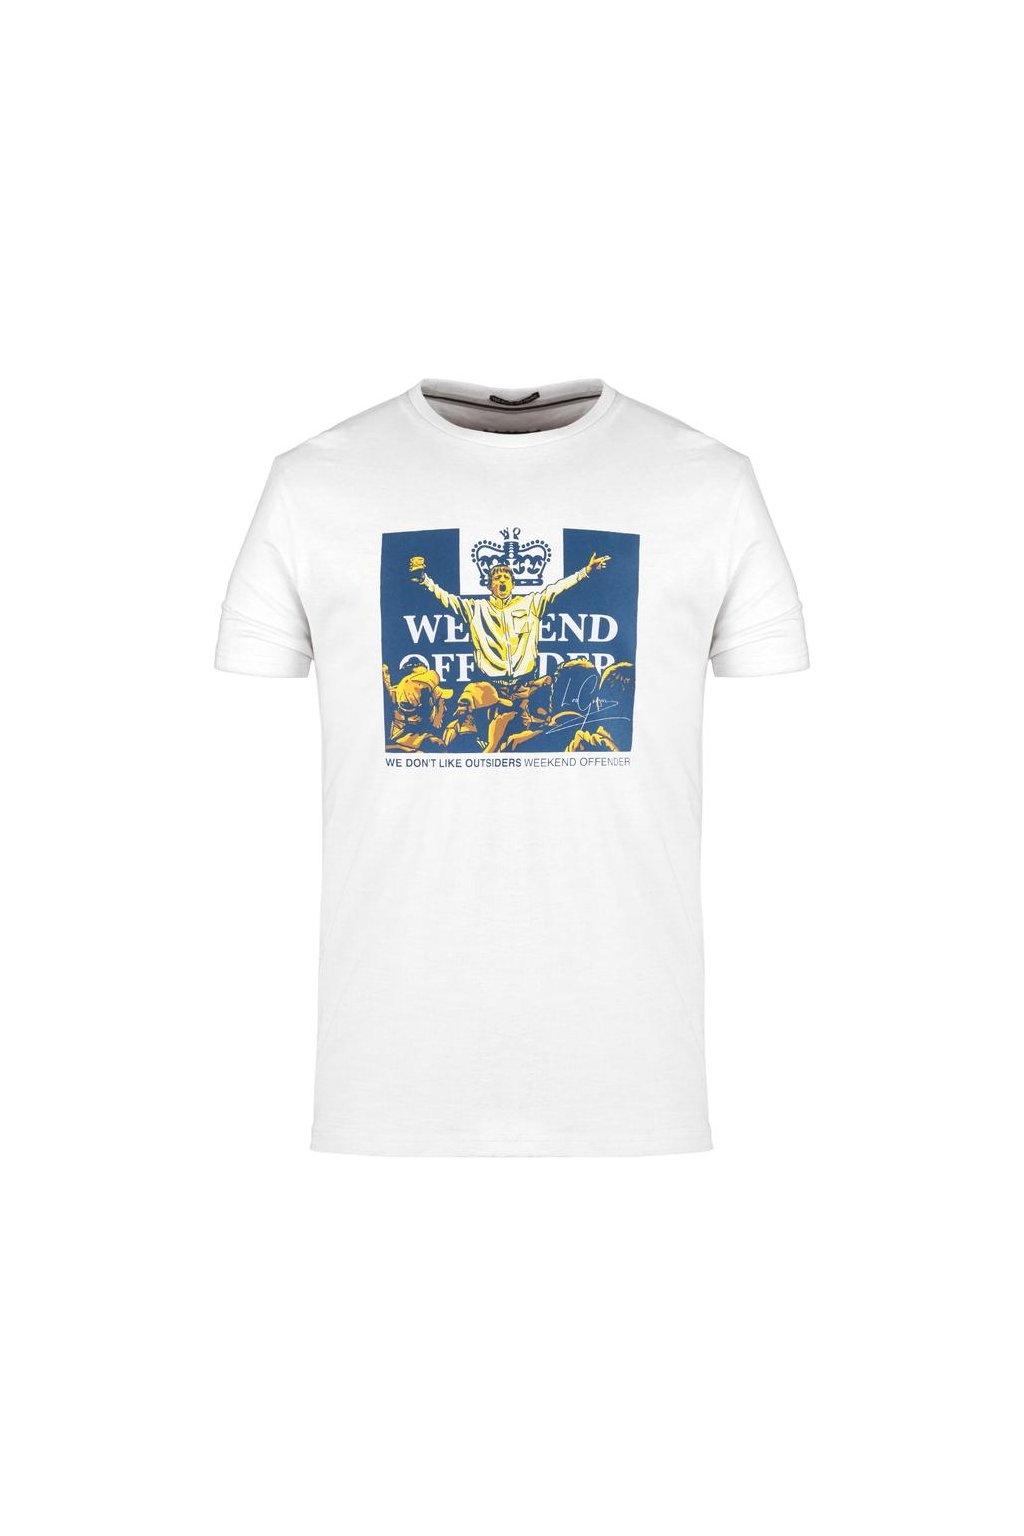 LEO GREGORY TEE WHITE MANNEQUIN 900x